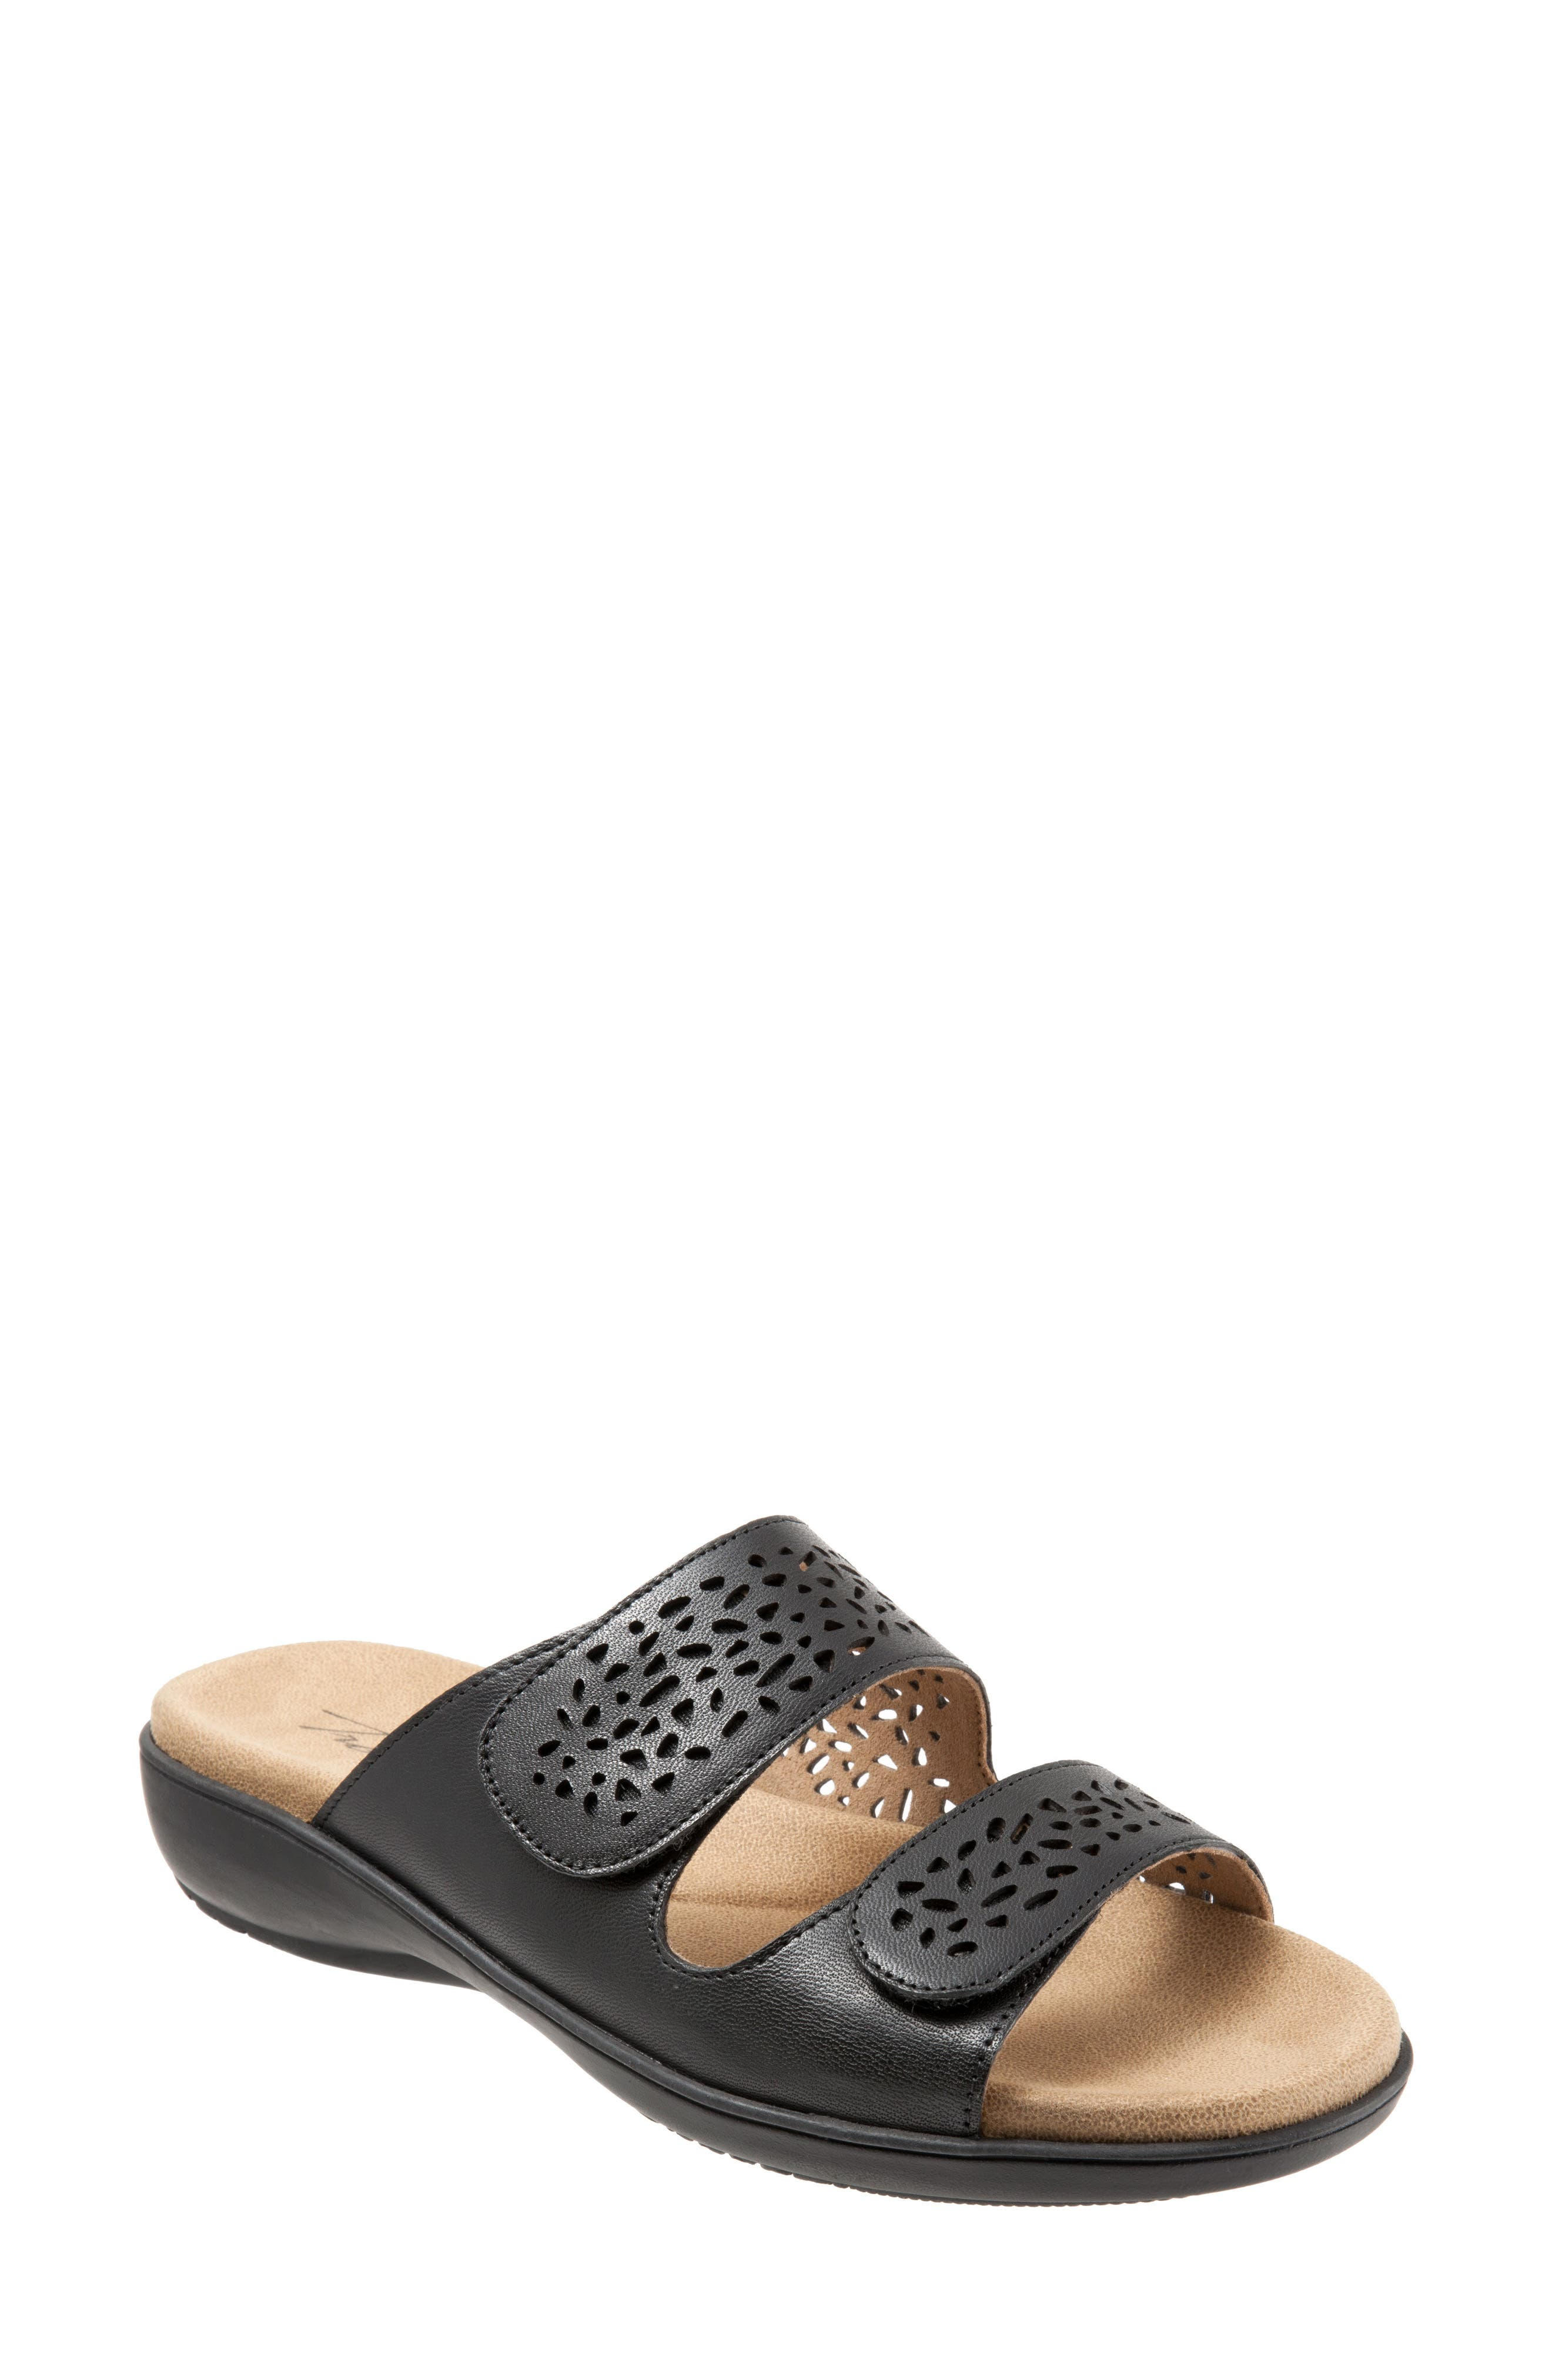 Tokie Sandal,                         Main,                         color, BLACK LEATHER